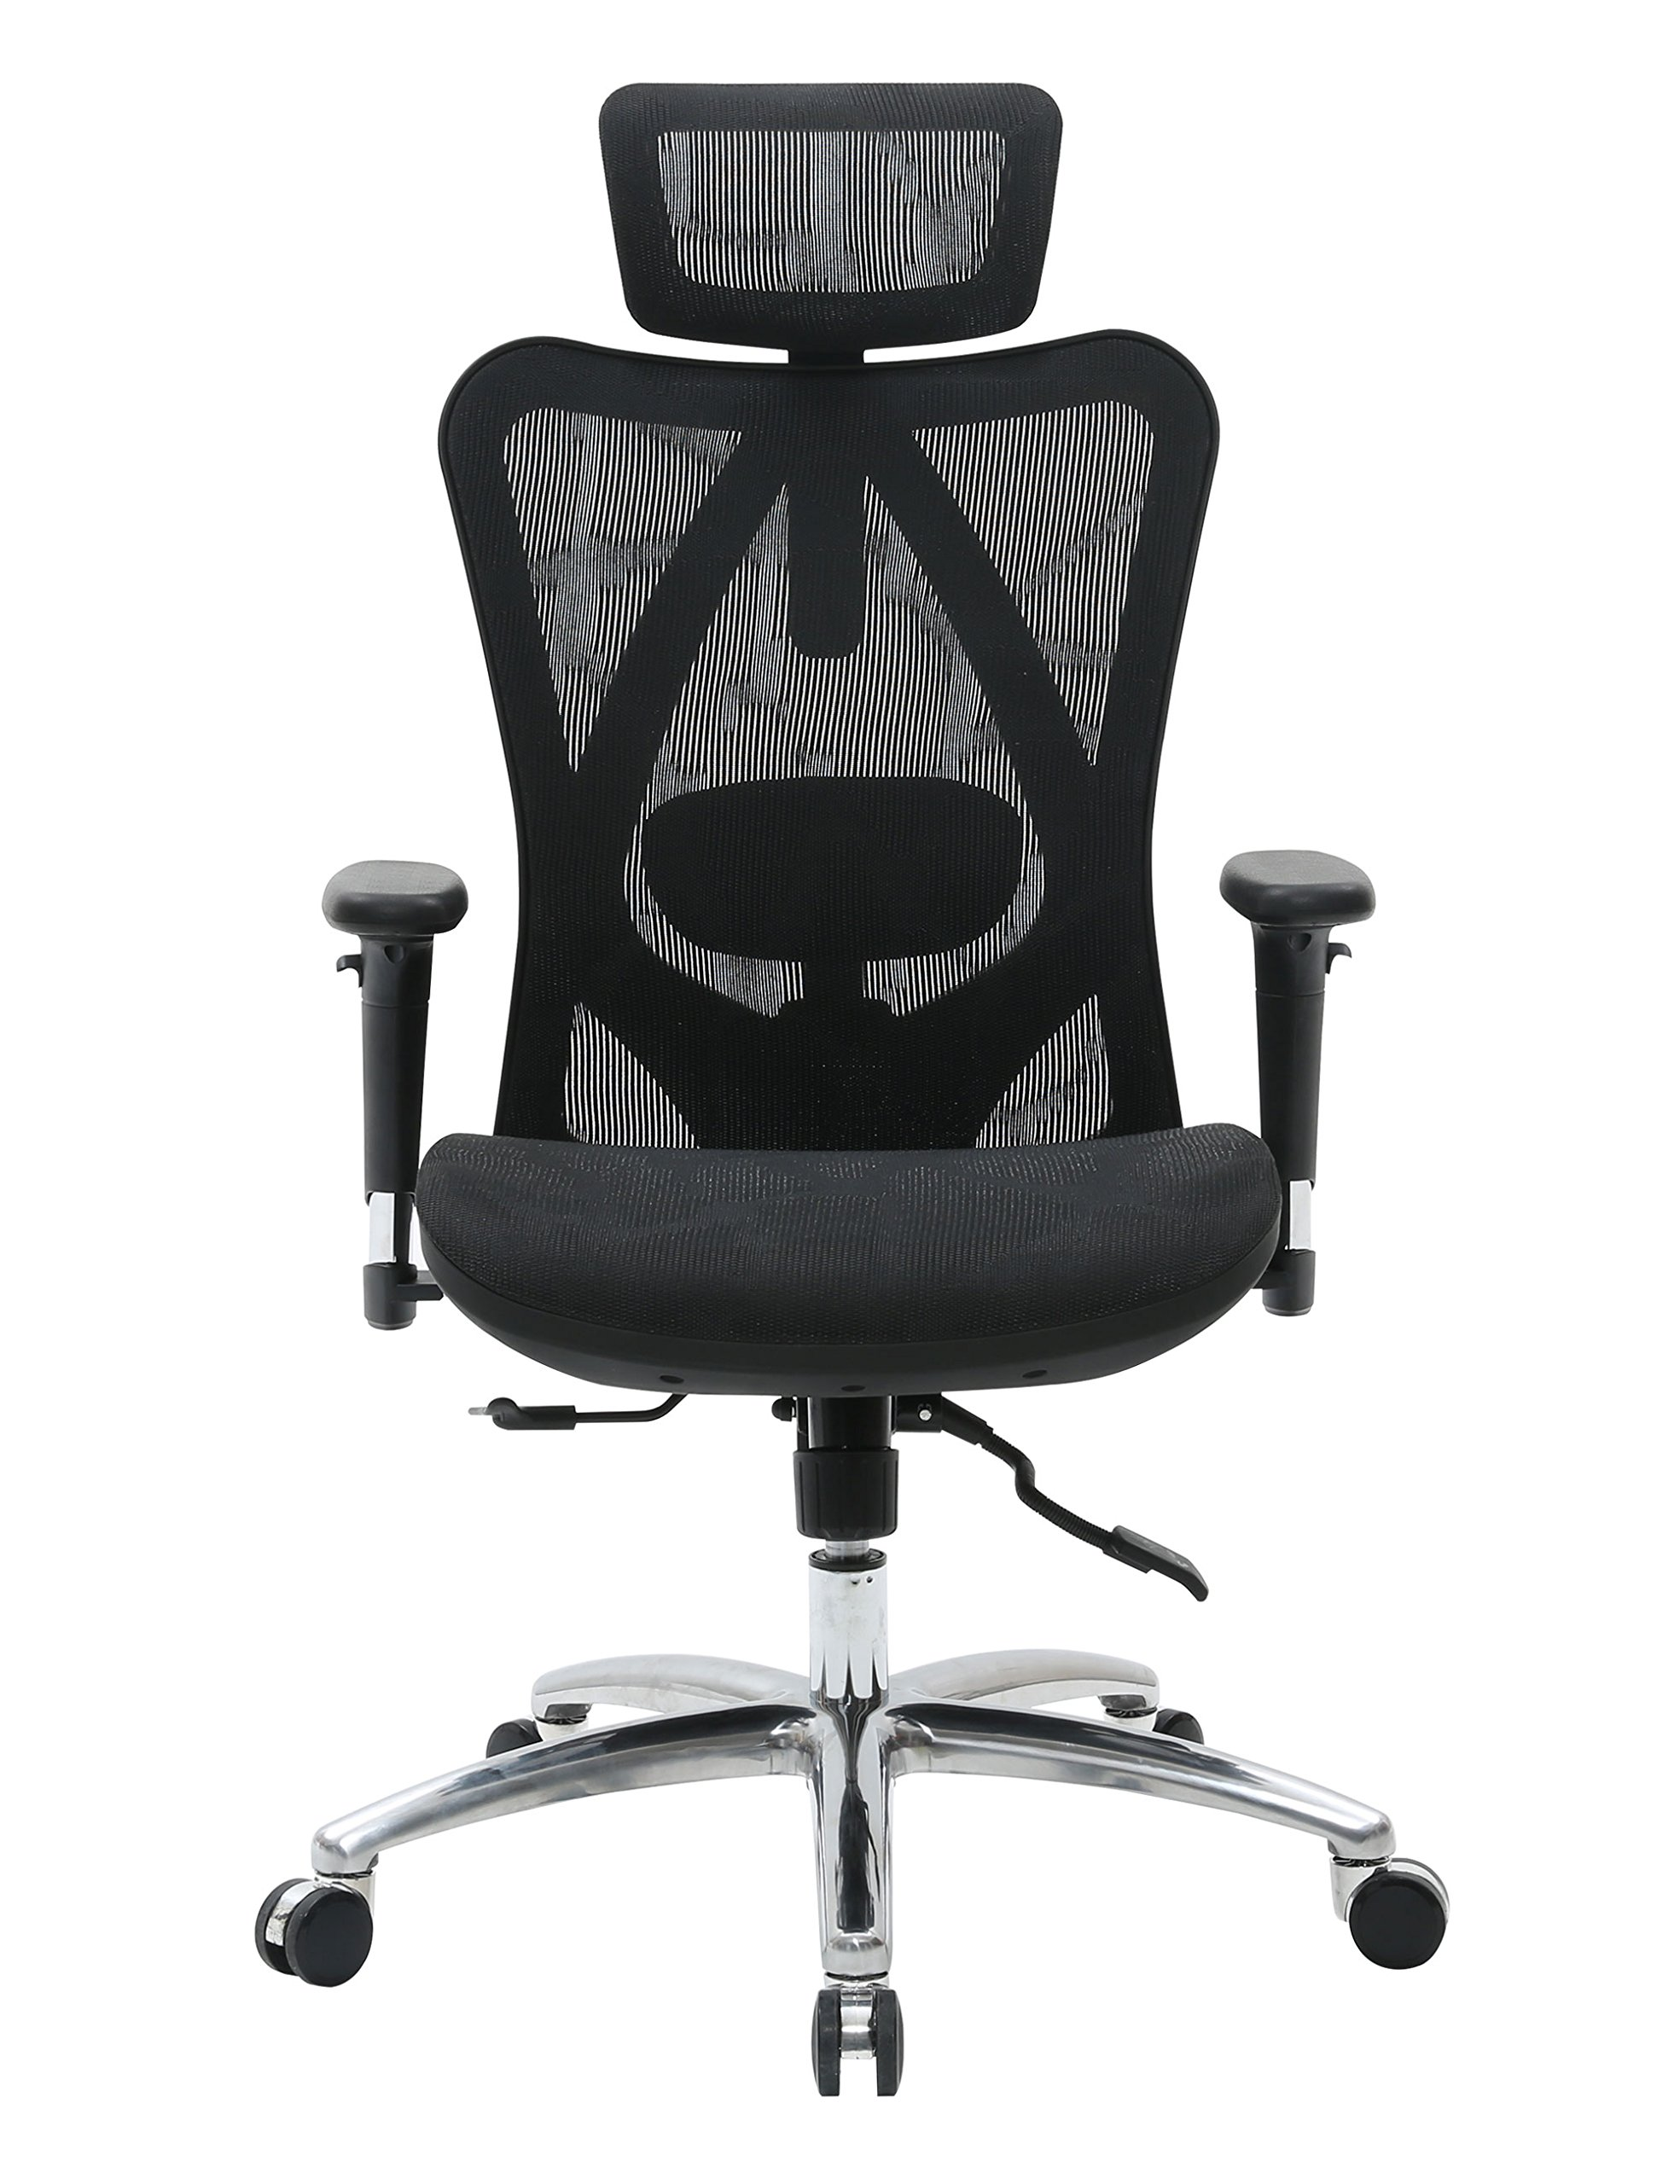 Sihoo Ergonomic Office Chair, Computer Desk Chair, 3D Adjustable High-Back, Breathable Skin-Friendly Mesh with Armrest, Lumbar Support (Black) by SIHOO